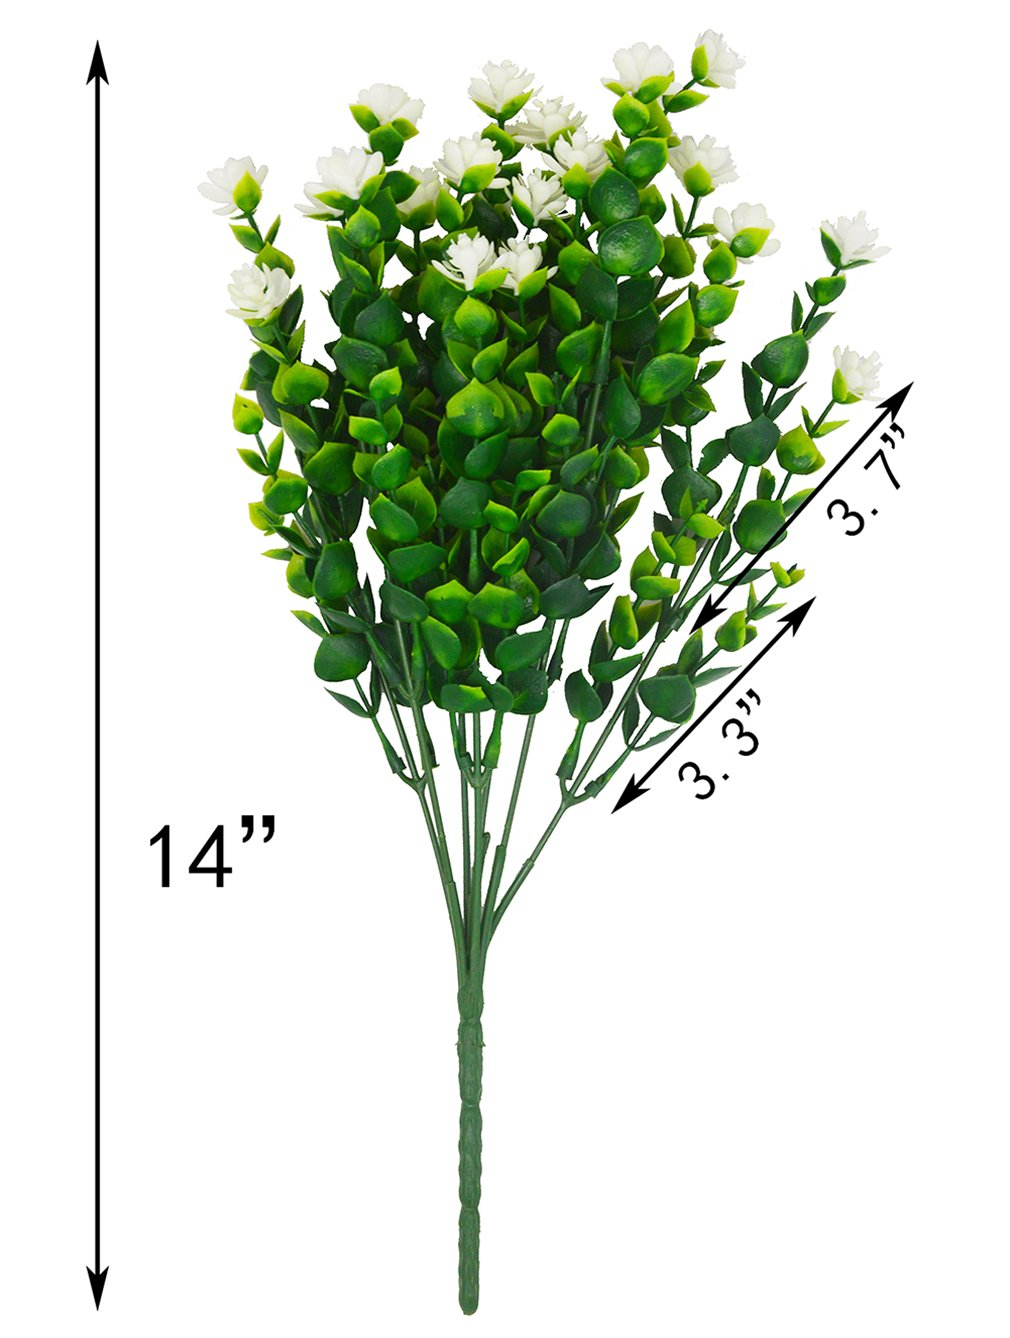 Beebel Artificial Flower Greenery Plants for Home Kitchen Dining Room Hanging Planter Garden,4 Bundles/White by Beebel (Image #2)